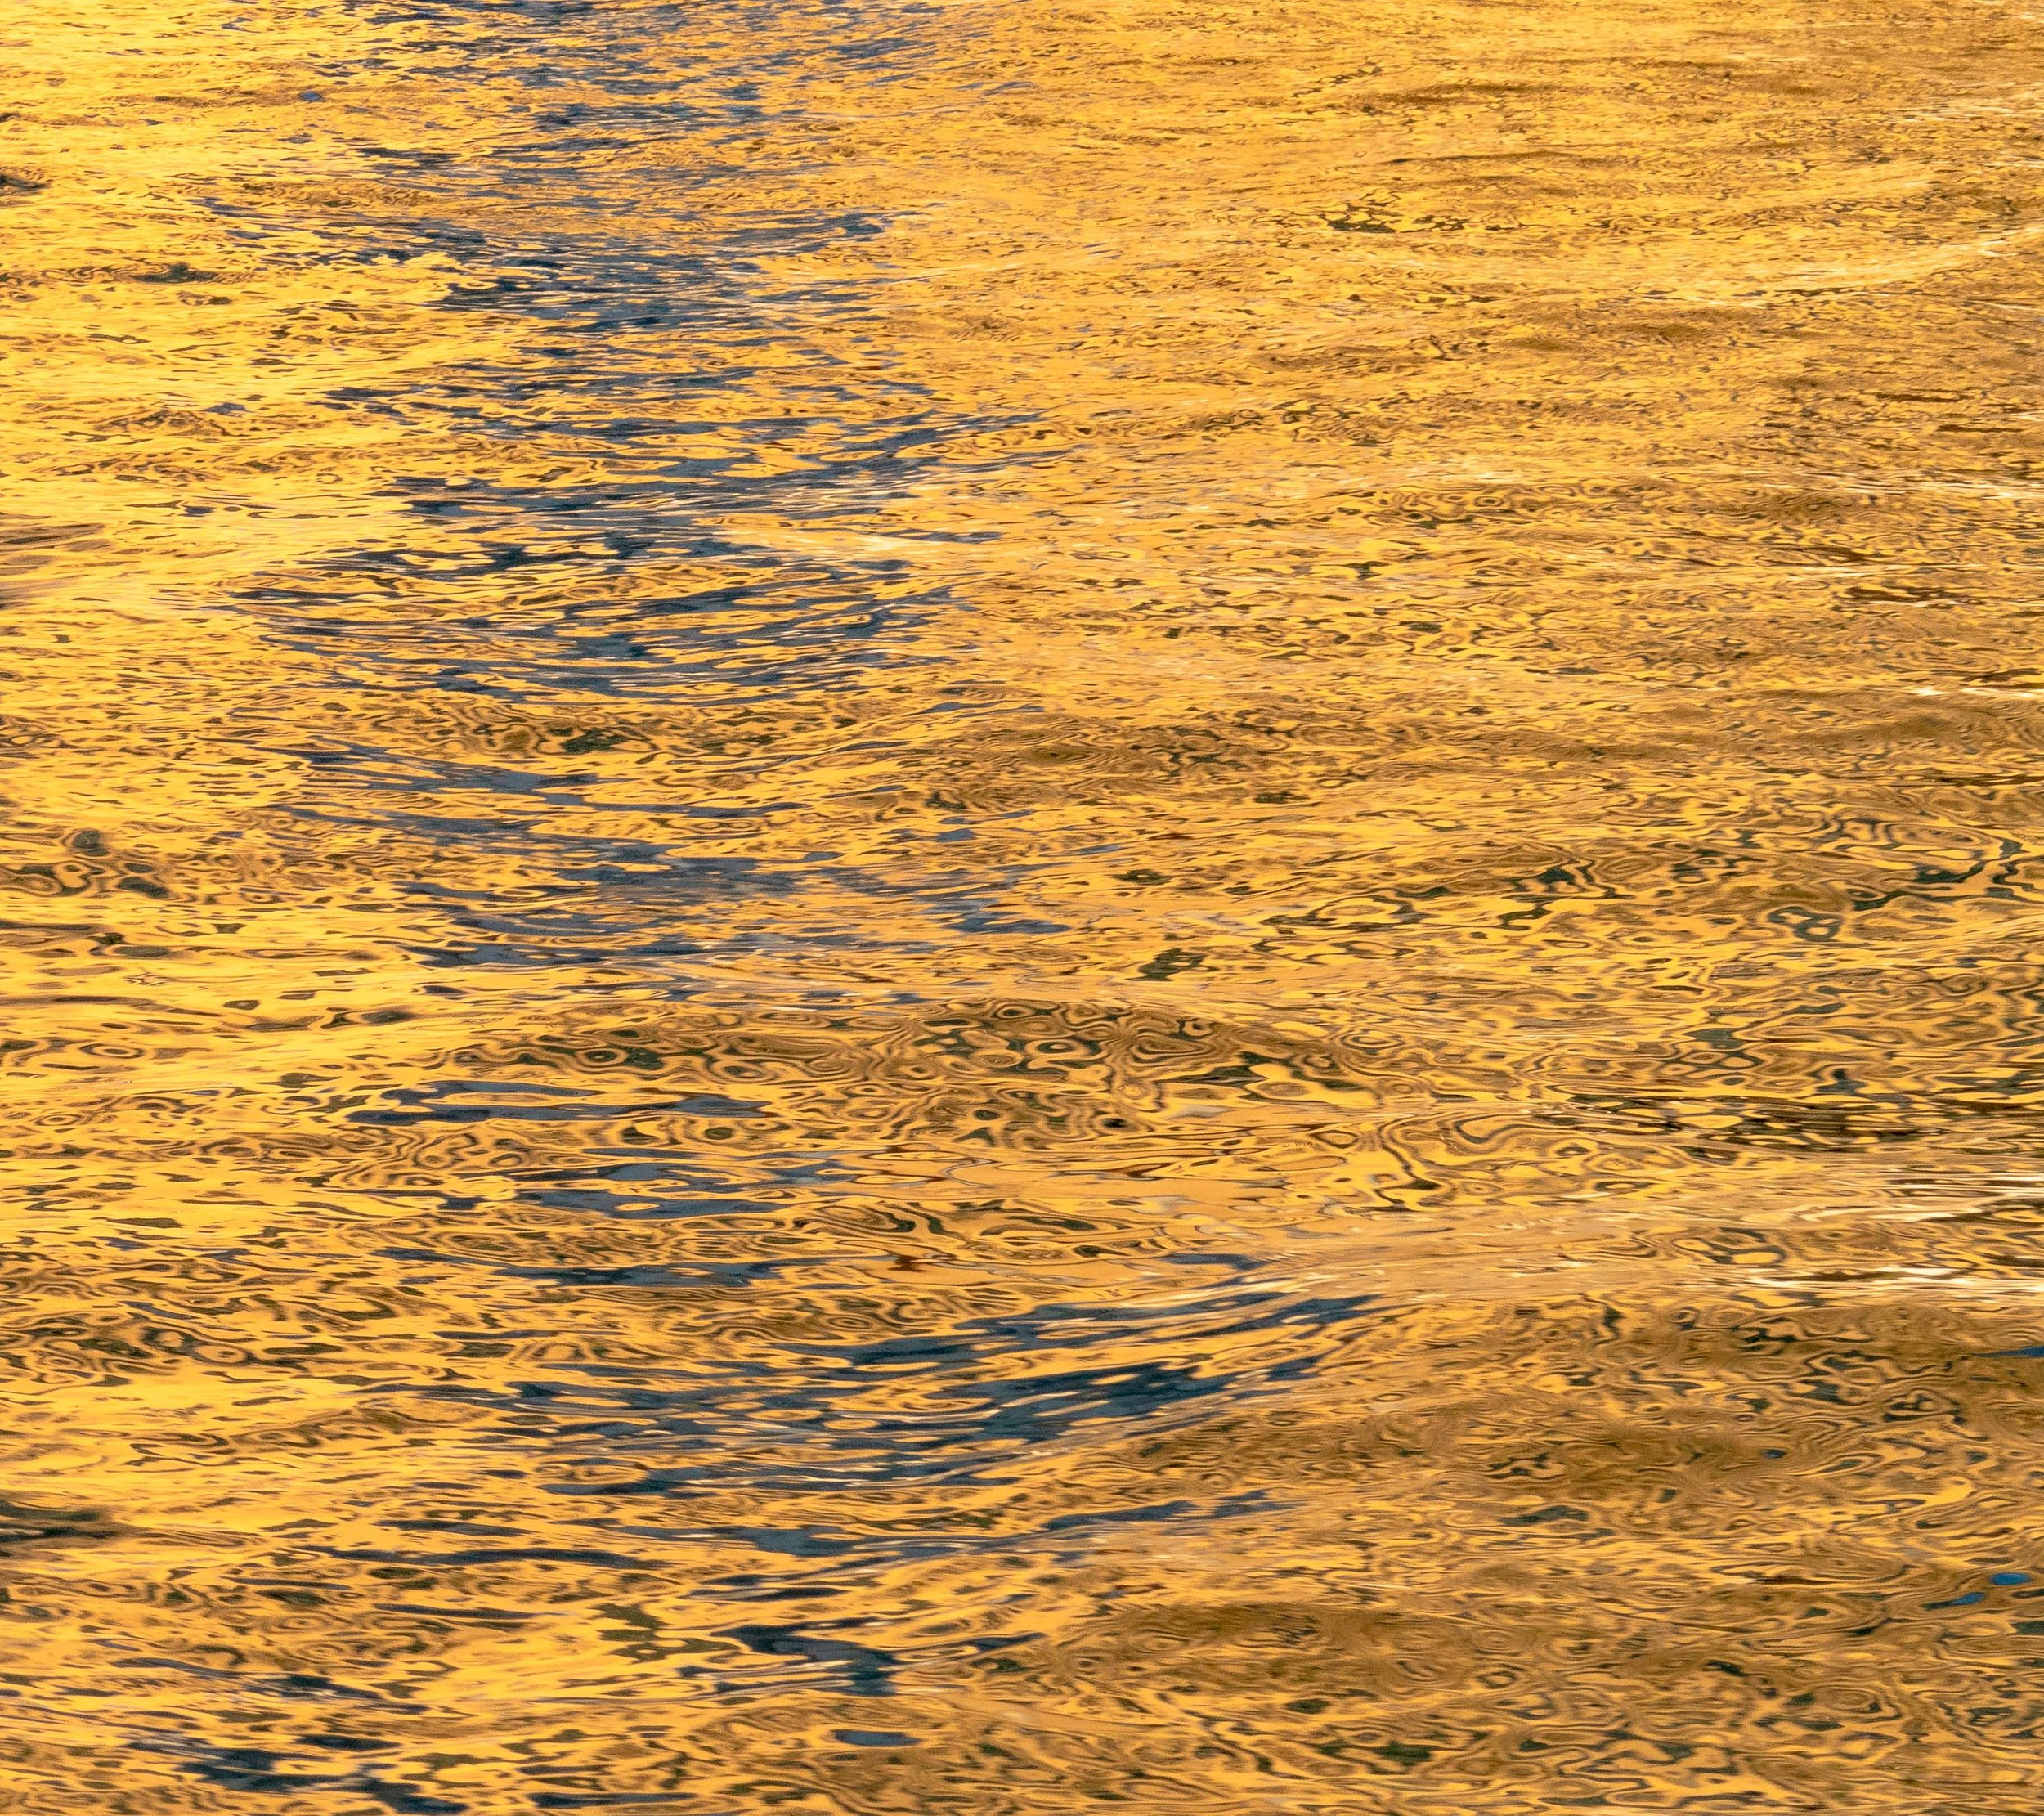 Gold Leaf on Water 2